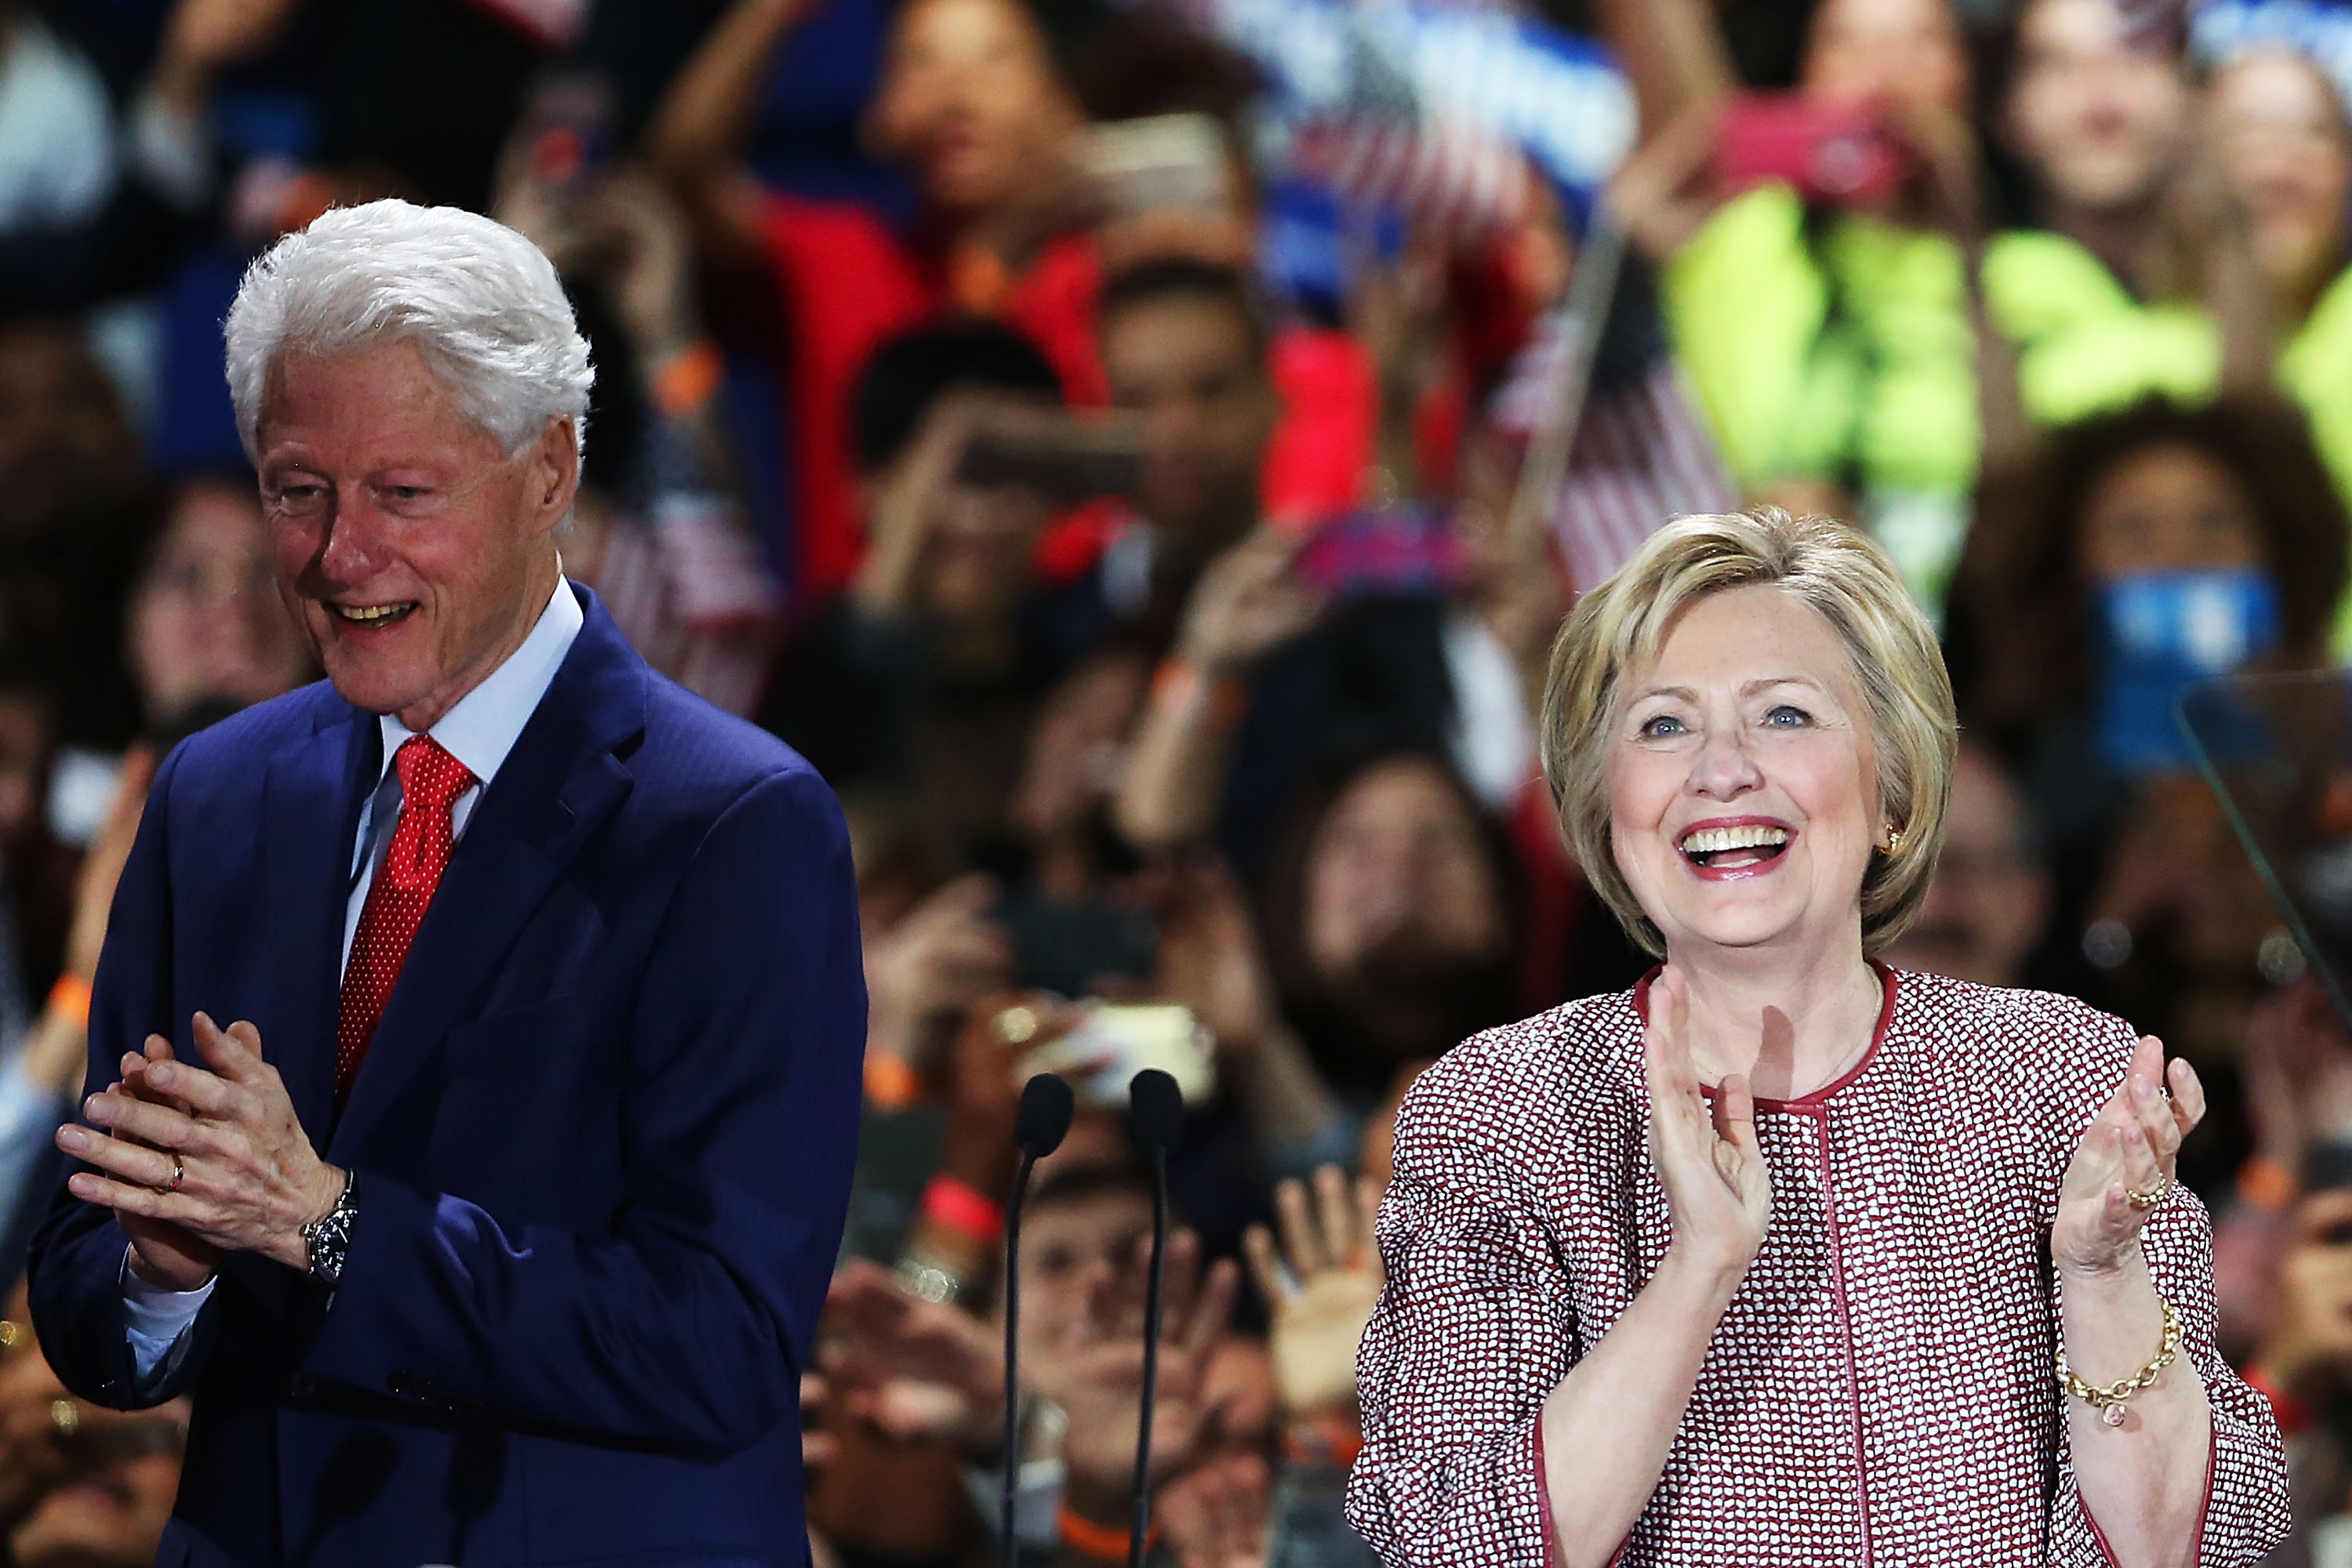 Democratic presidential candidate Hillary Clinton walks on stage with her husband Bill Clinton after winning the highly contested New York primary on April 19, 2016 in New York City. Clinton, who had enjoyed a large lead over her rival Bernie Sanders only months ago, saw that lead shrink as the Sanders campaign made inroads with younger and more liberal voters.